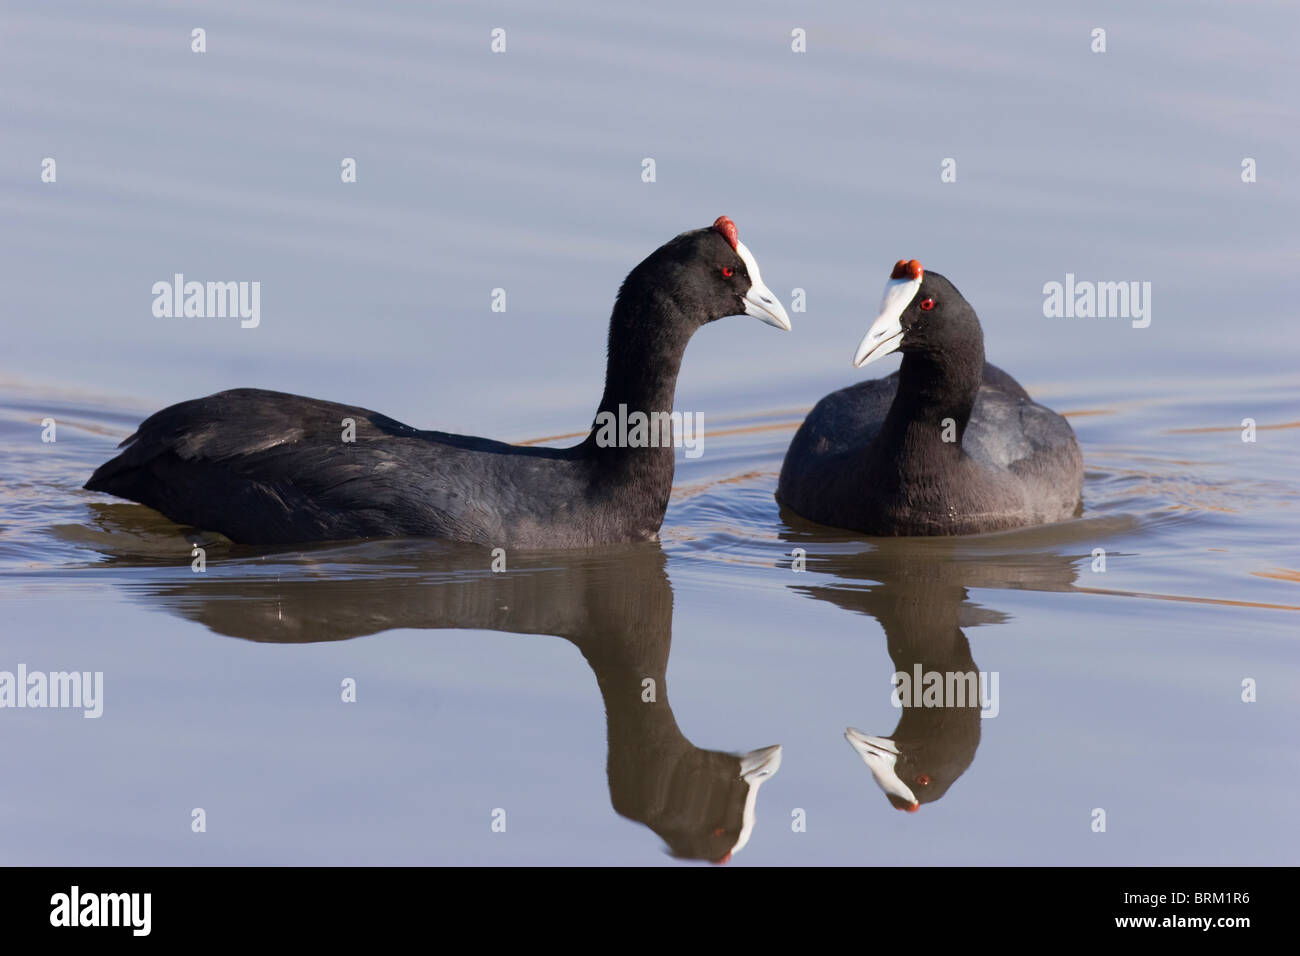 Two Red-knobbed coots facing each other on water Stock Photo